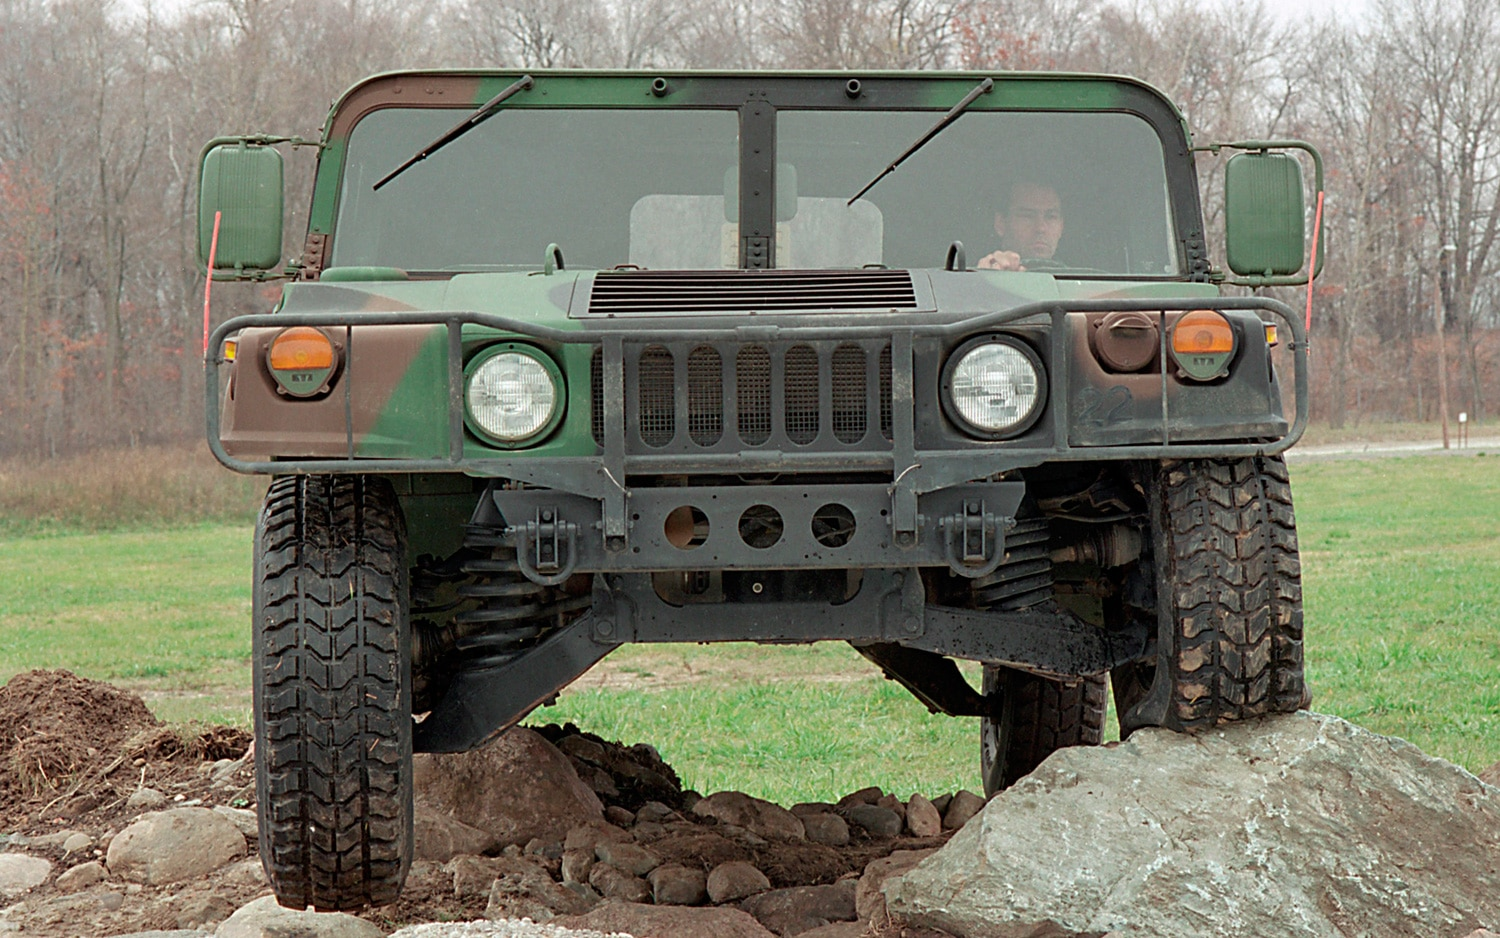 Focus St 0 60 >> AM General Considering Selling Build-Your-Own Humvee Kits